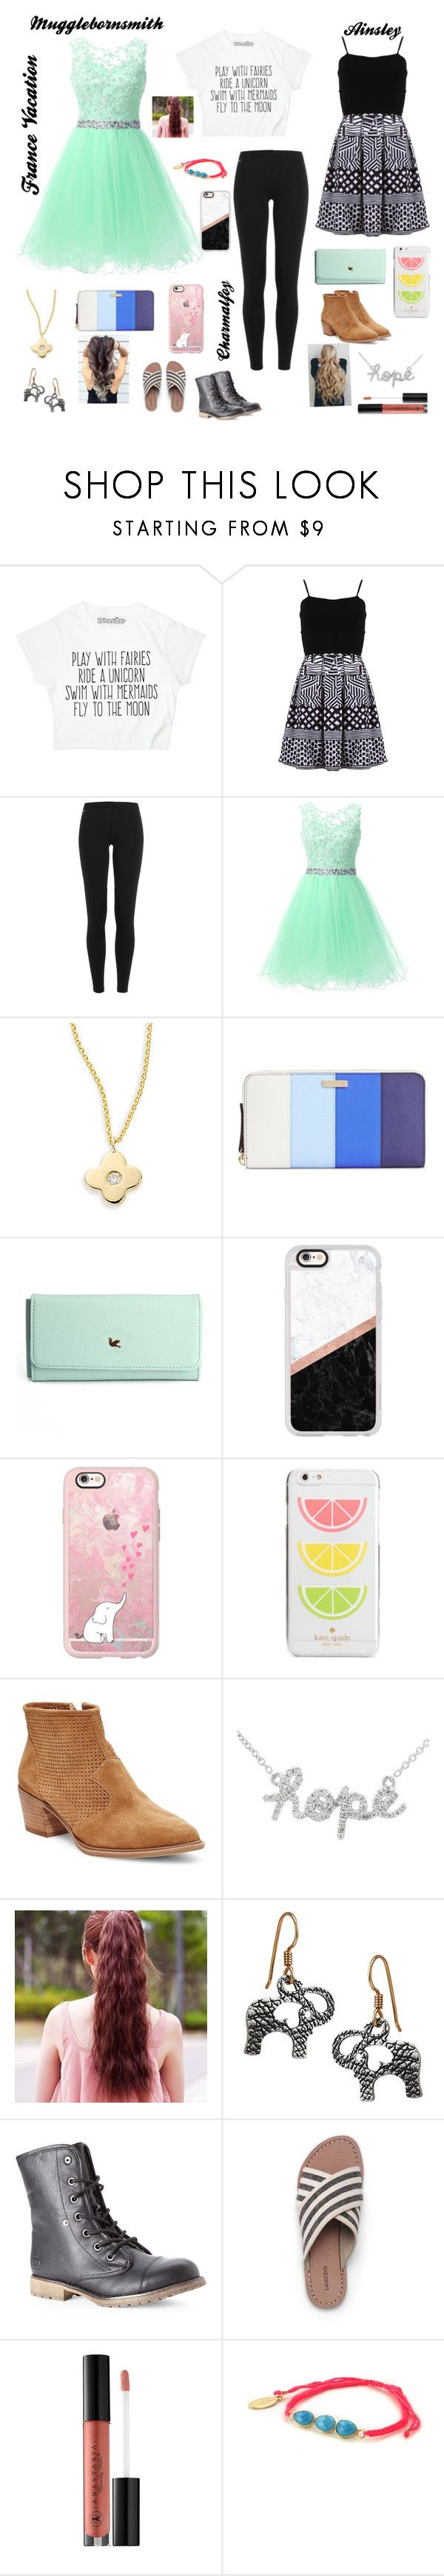 """""""Dinner Night 1 (in France)"""" by ainsleyhaas on Polyvore featuring FRACOMINA, Polo Ralph Lauren, KC Designs, Kate Spade, Casetify, Steven by Steve Madden, Sydney Evan, Dirty Laundry, Lands' End and Anastasia Beverly Hills"""